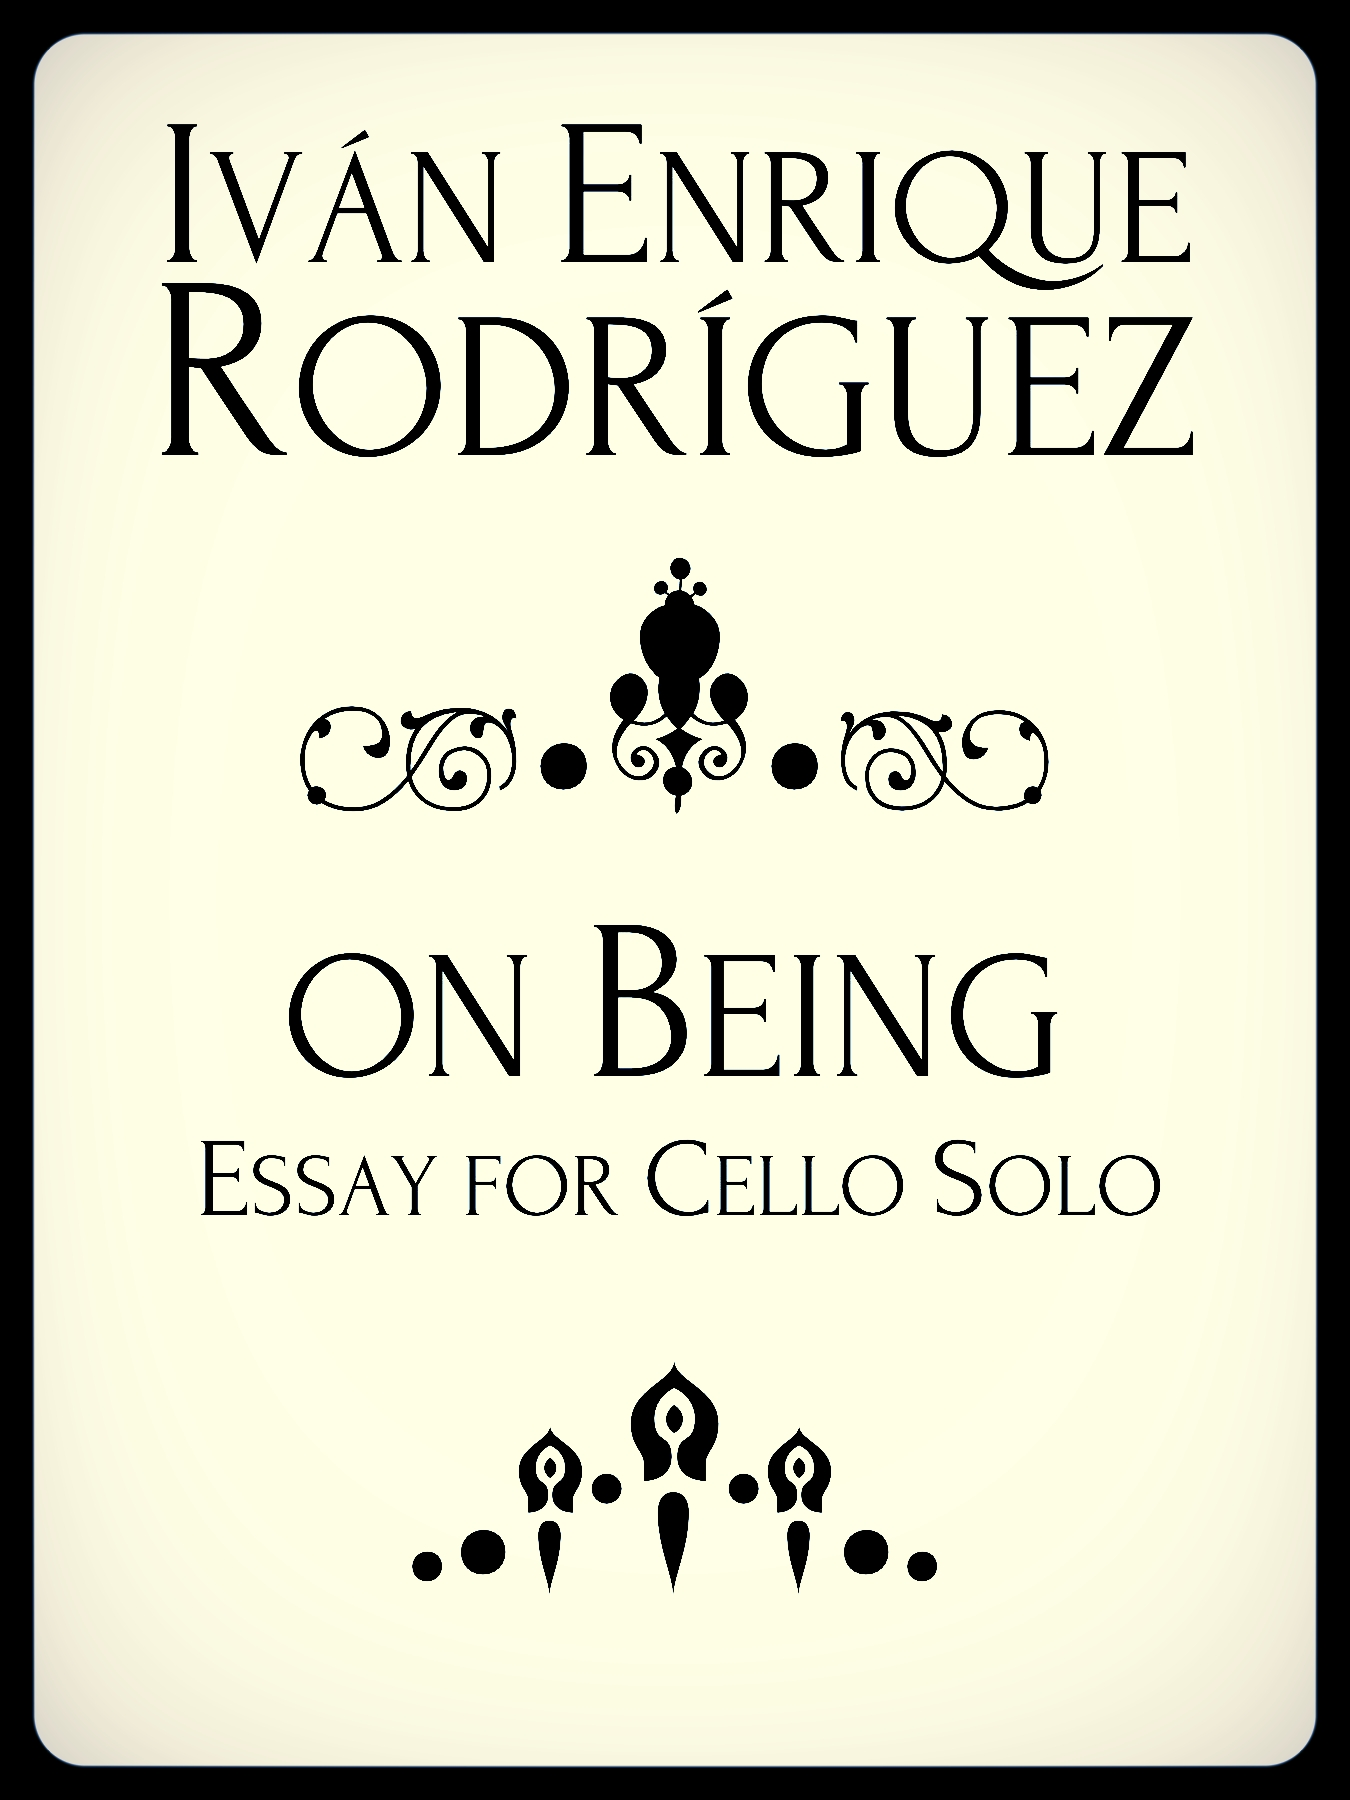 on Being - Cello (dragged).jpg